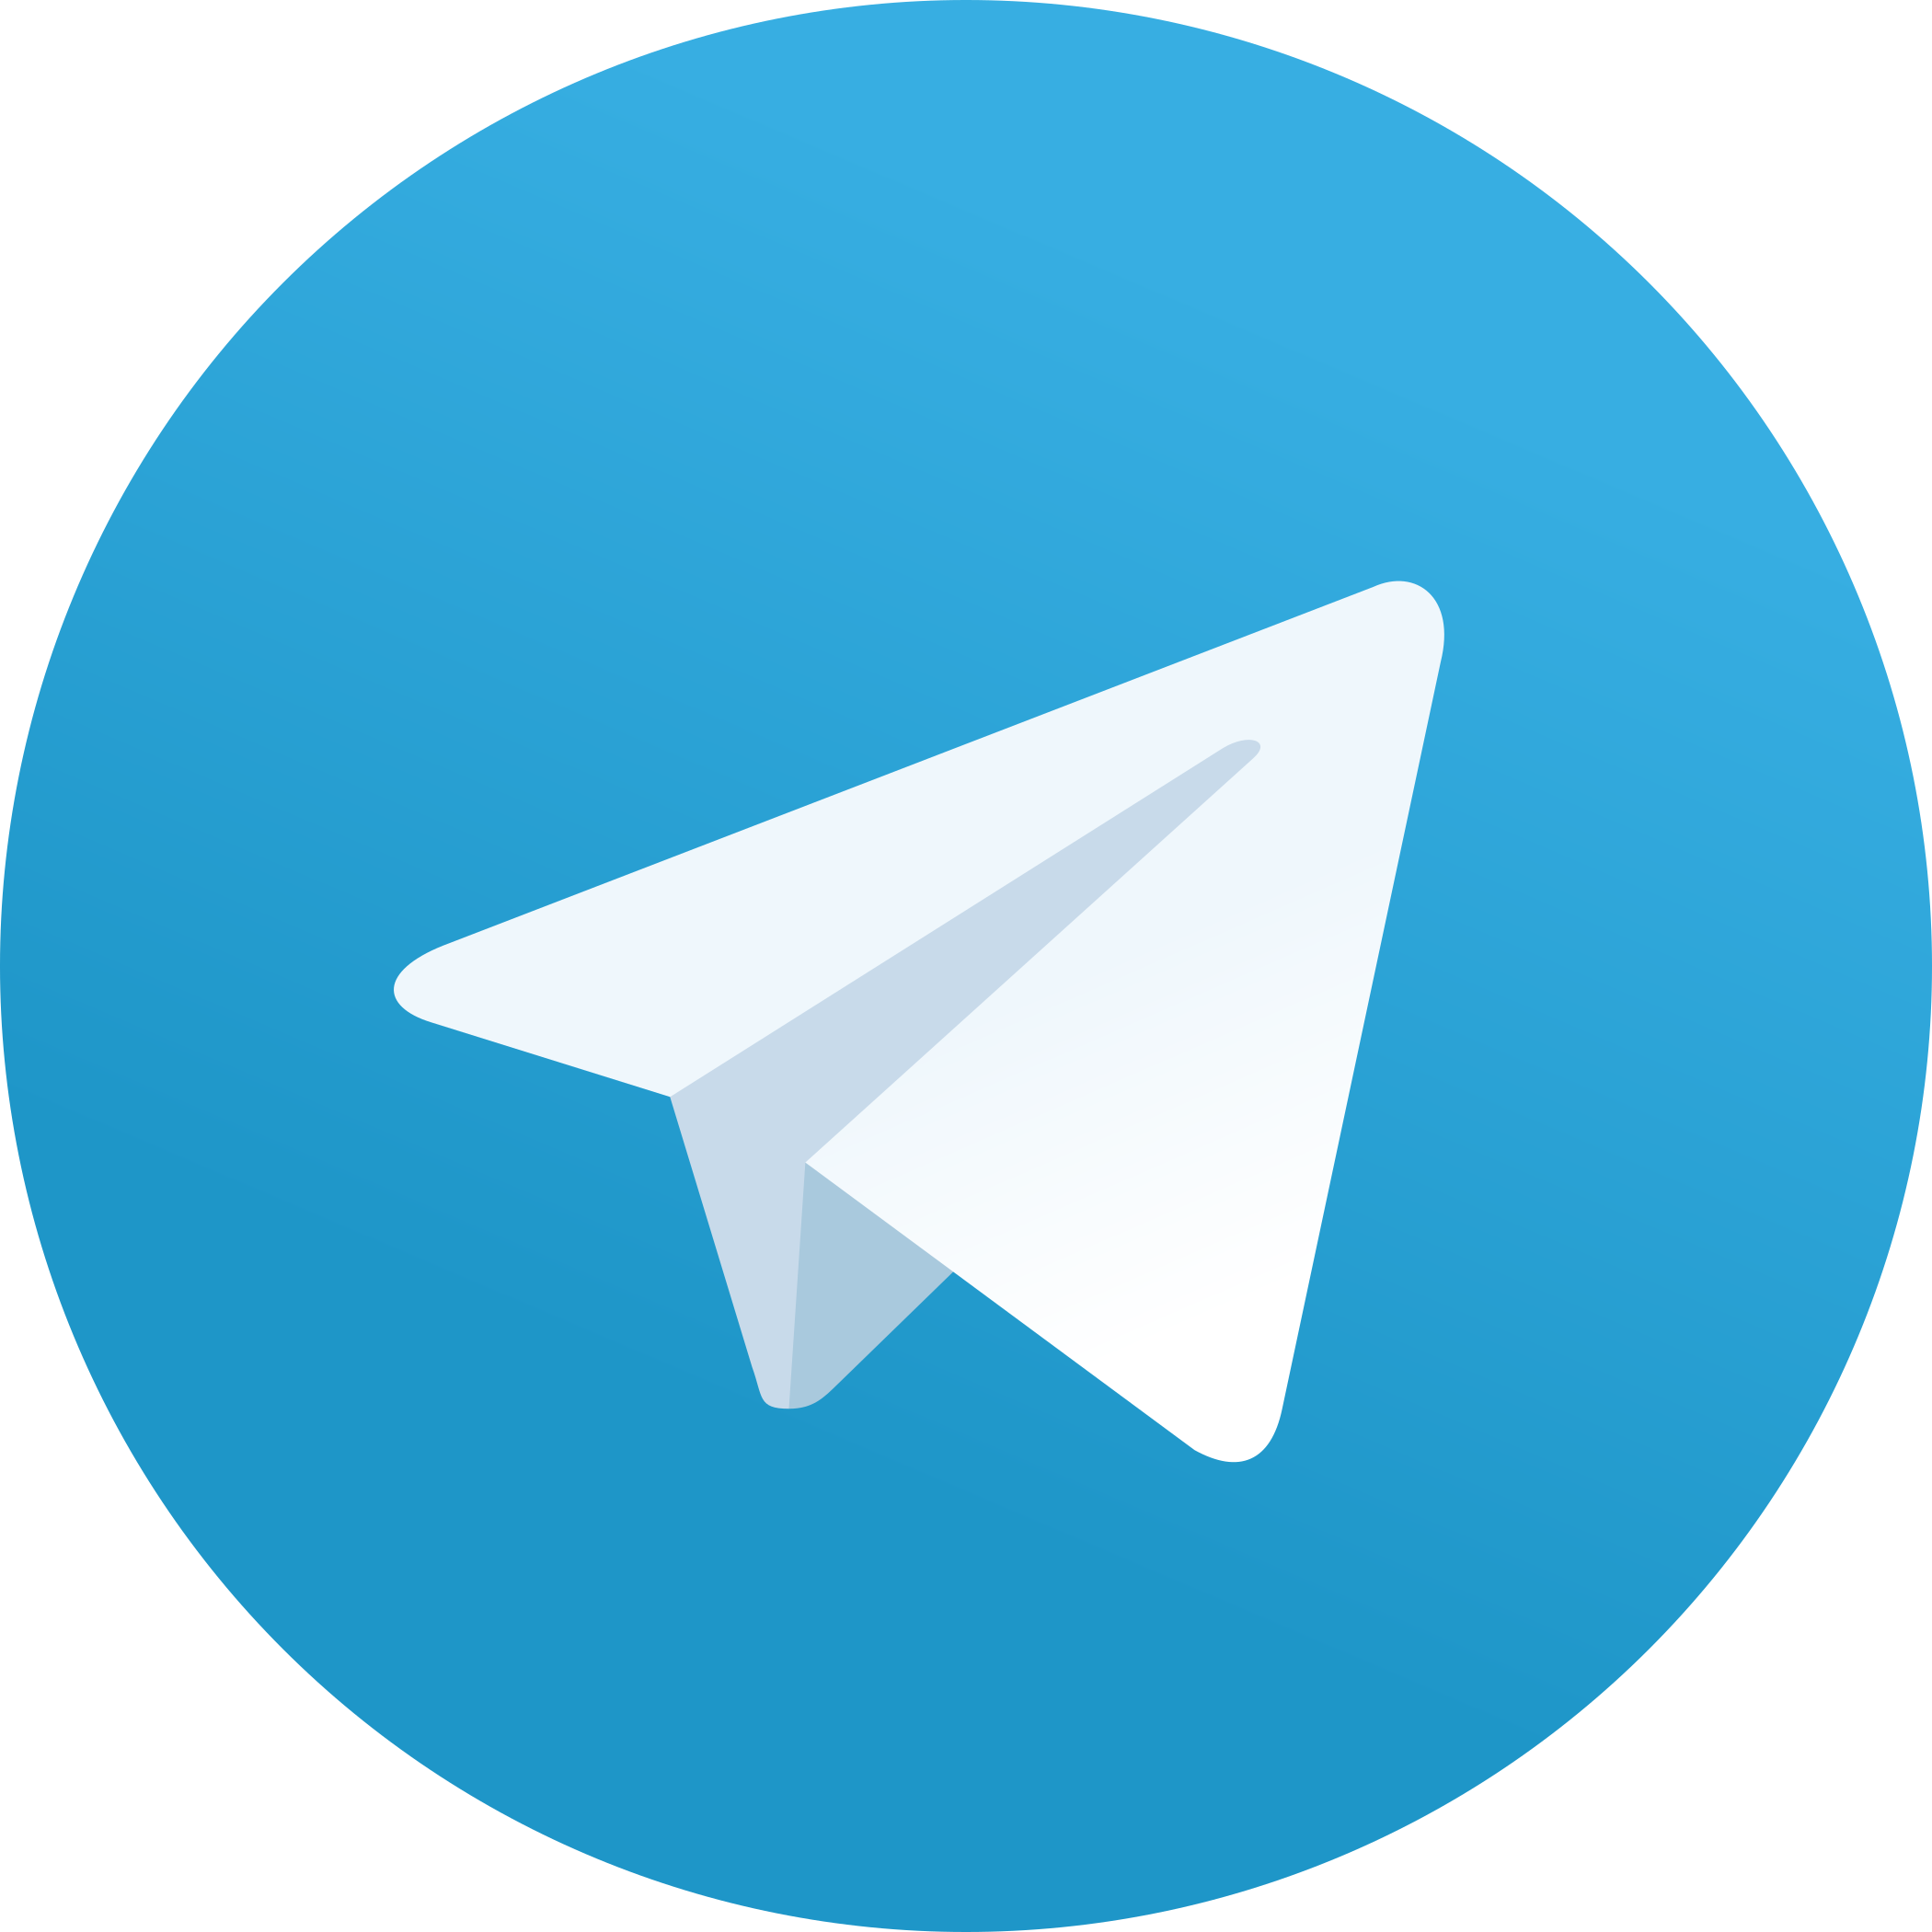 telegram logo 1 - Telegram Logo